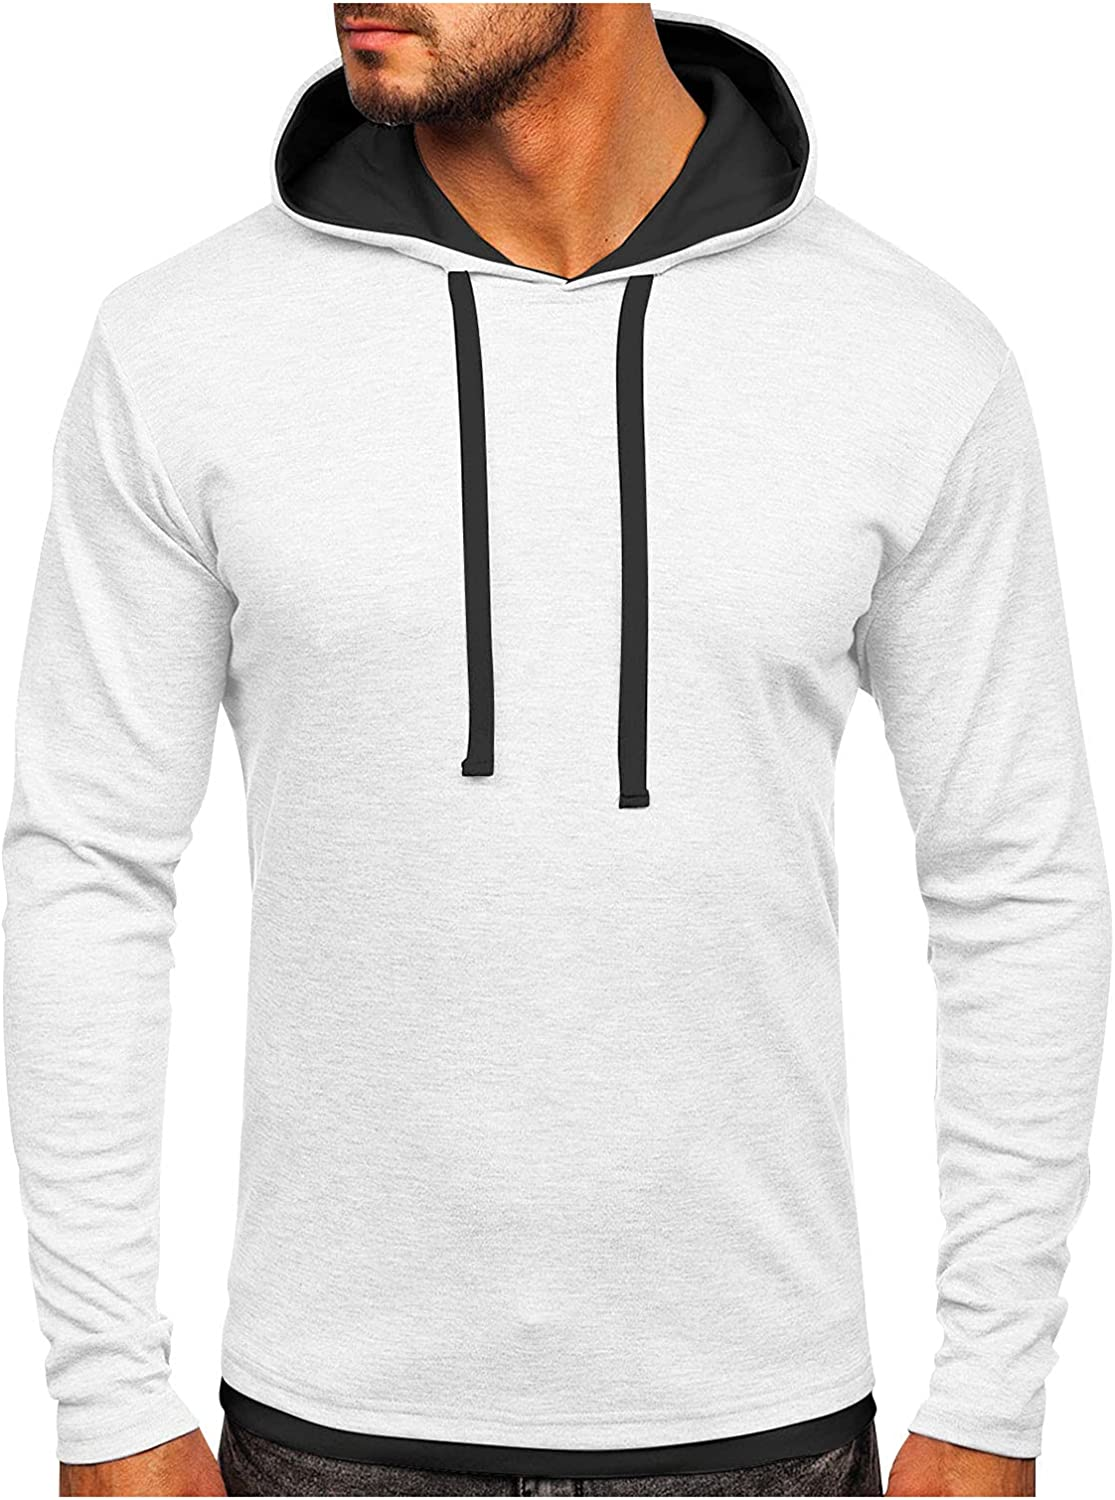 Men's Pullover Hoodie Lightweight Solid Color Hooded Sweatshirt Tops Casual Long Sleeve Patchwork Shirt Blouse